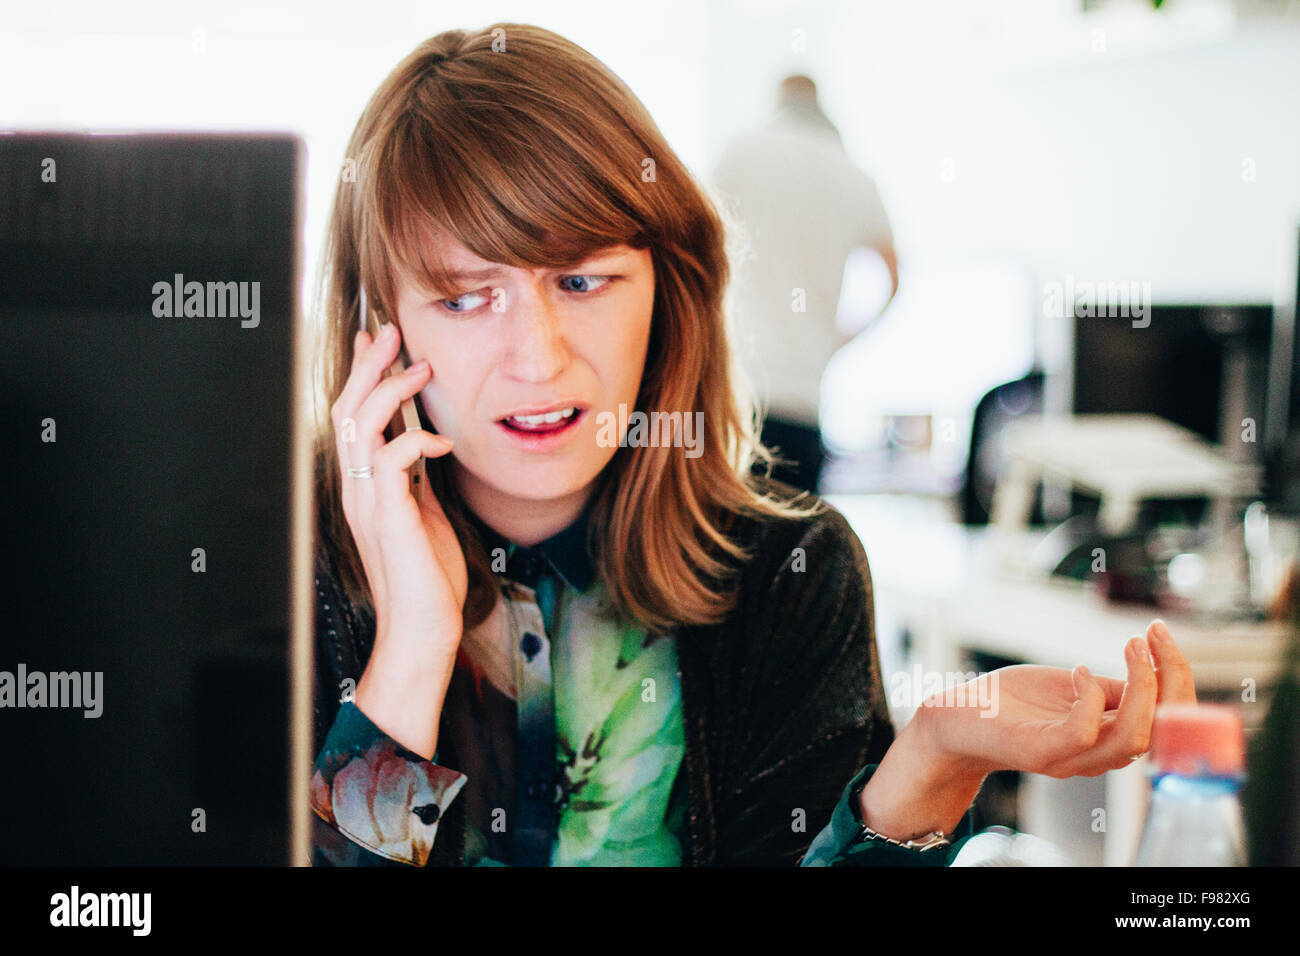 Worried Woman Talking On Mobile Phone While Sitting At Computer Desk In Office - Stock Image